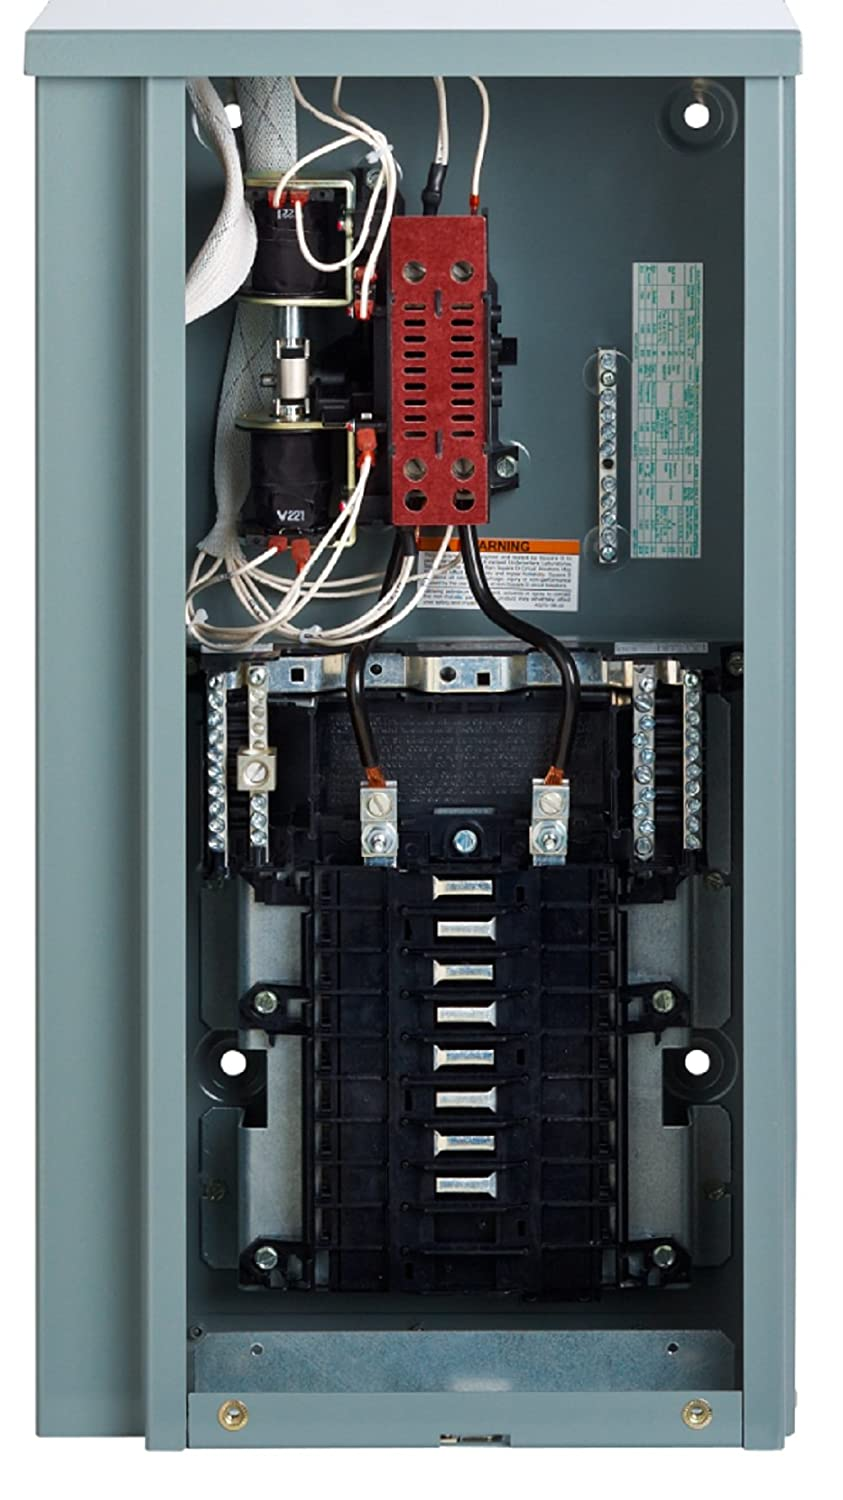 Kohler Automatic Transfer Switch Wiring Diagram Basic Schematic 4cm21 Generator Amazon Com 20rescl 200sels Air Cooled Standby Ignition